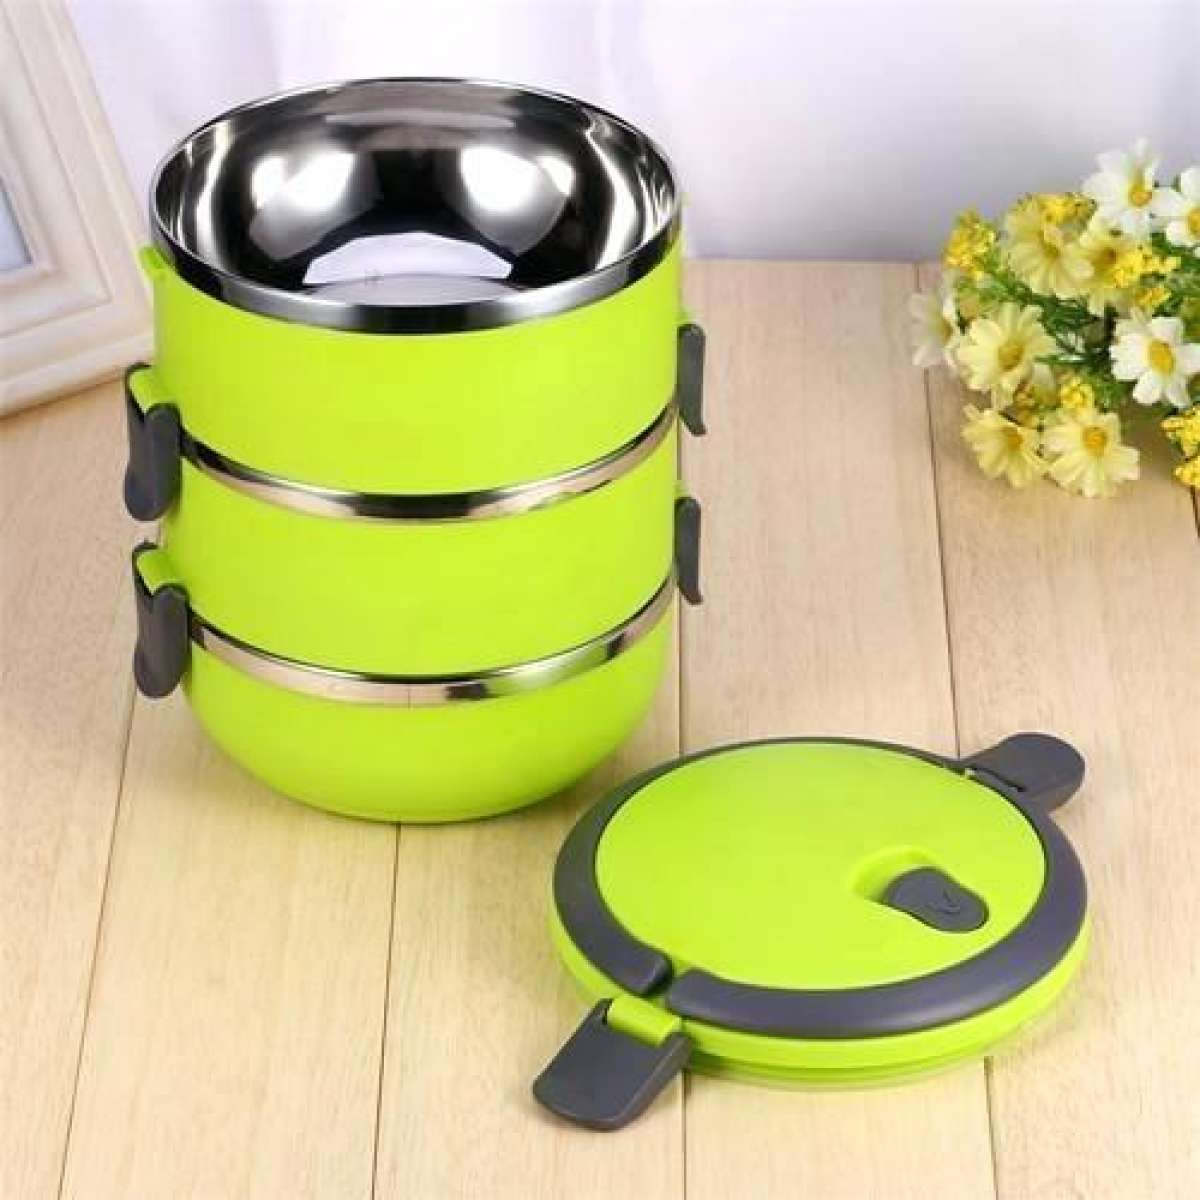 Easy Lock Stainless Steel Lunch Box 3 Layers (LB-03) Gallery Image 2